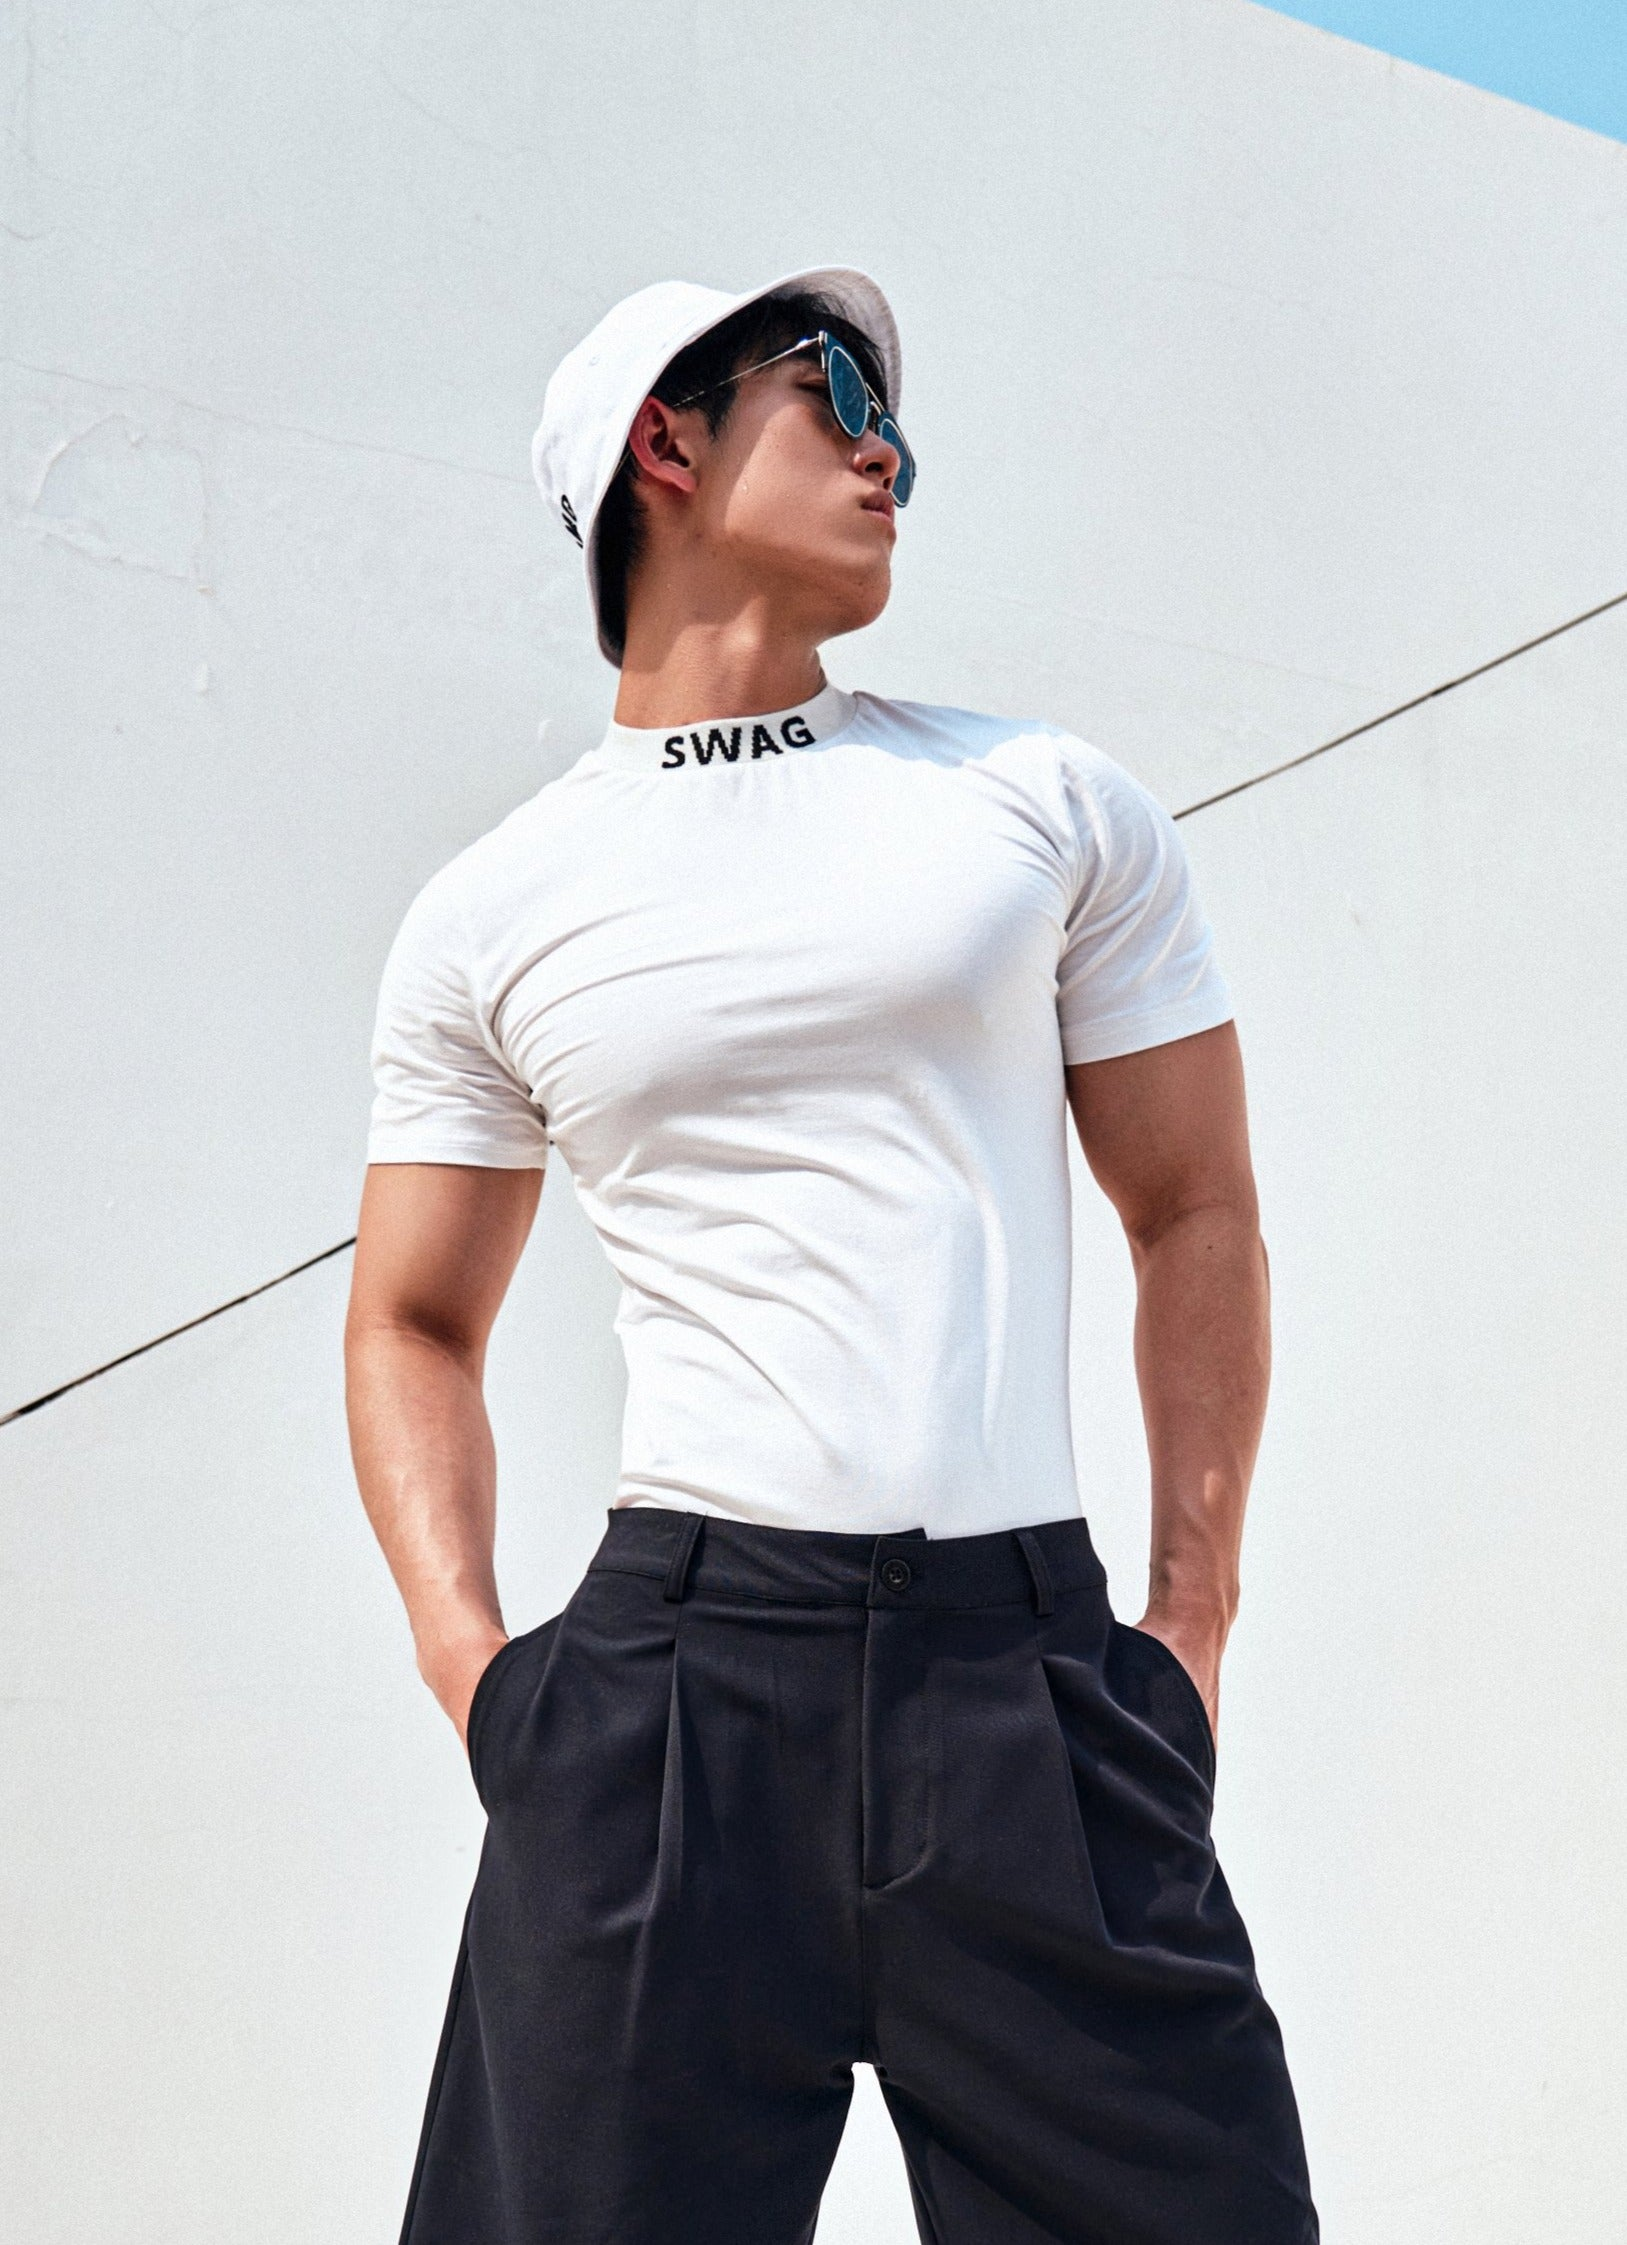 OMG® Swag Gym T-Shirt